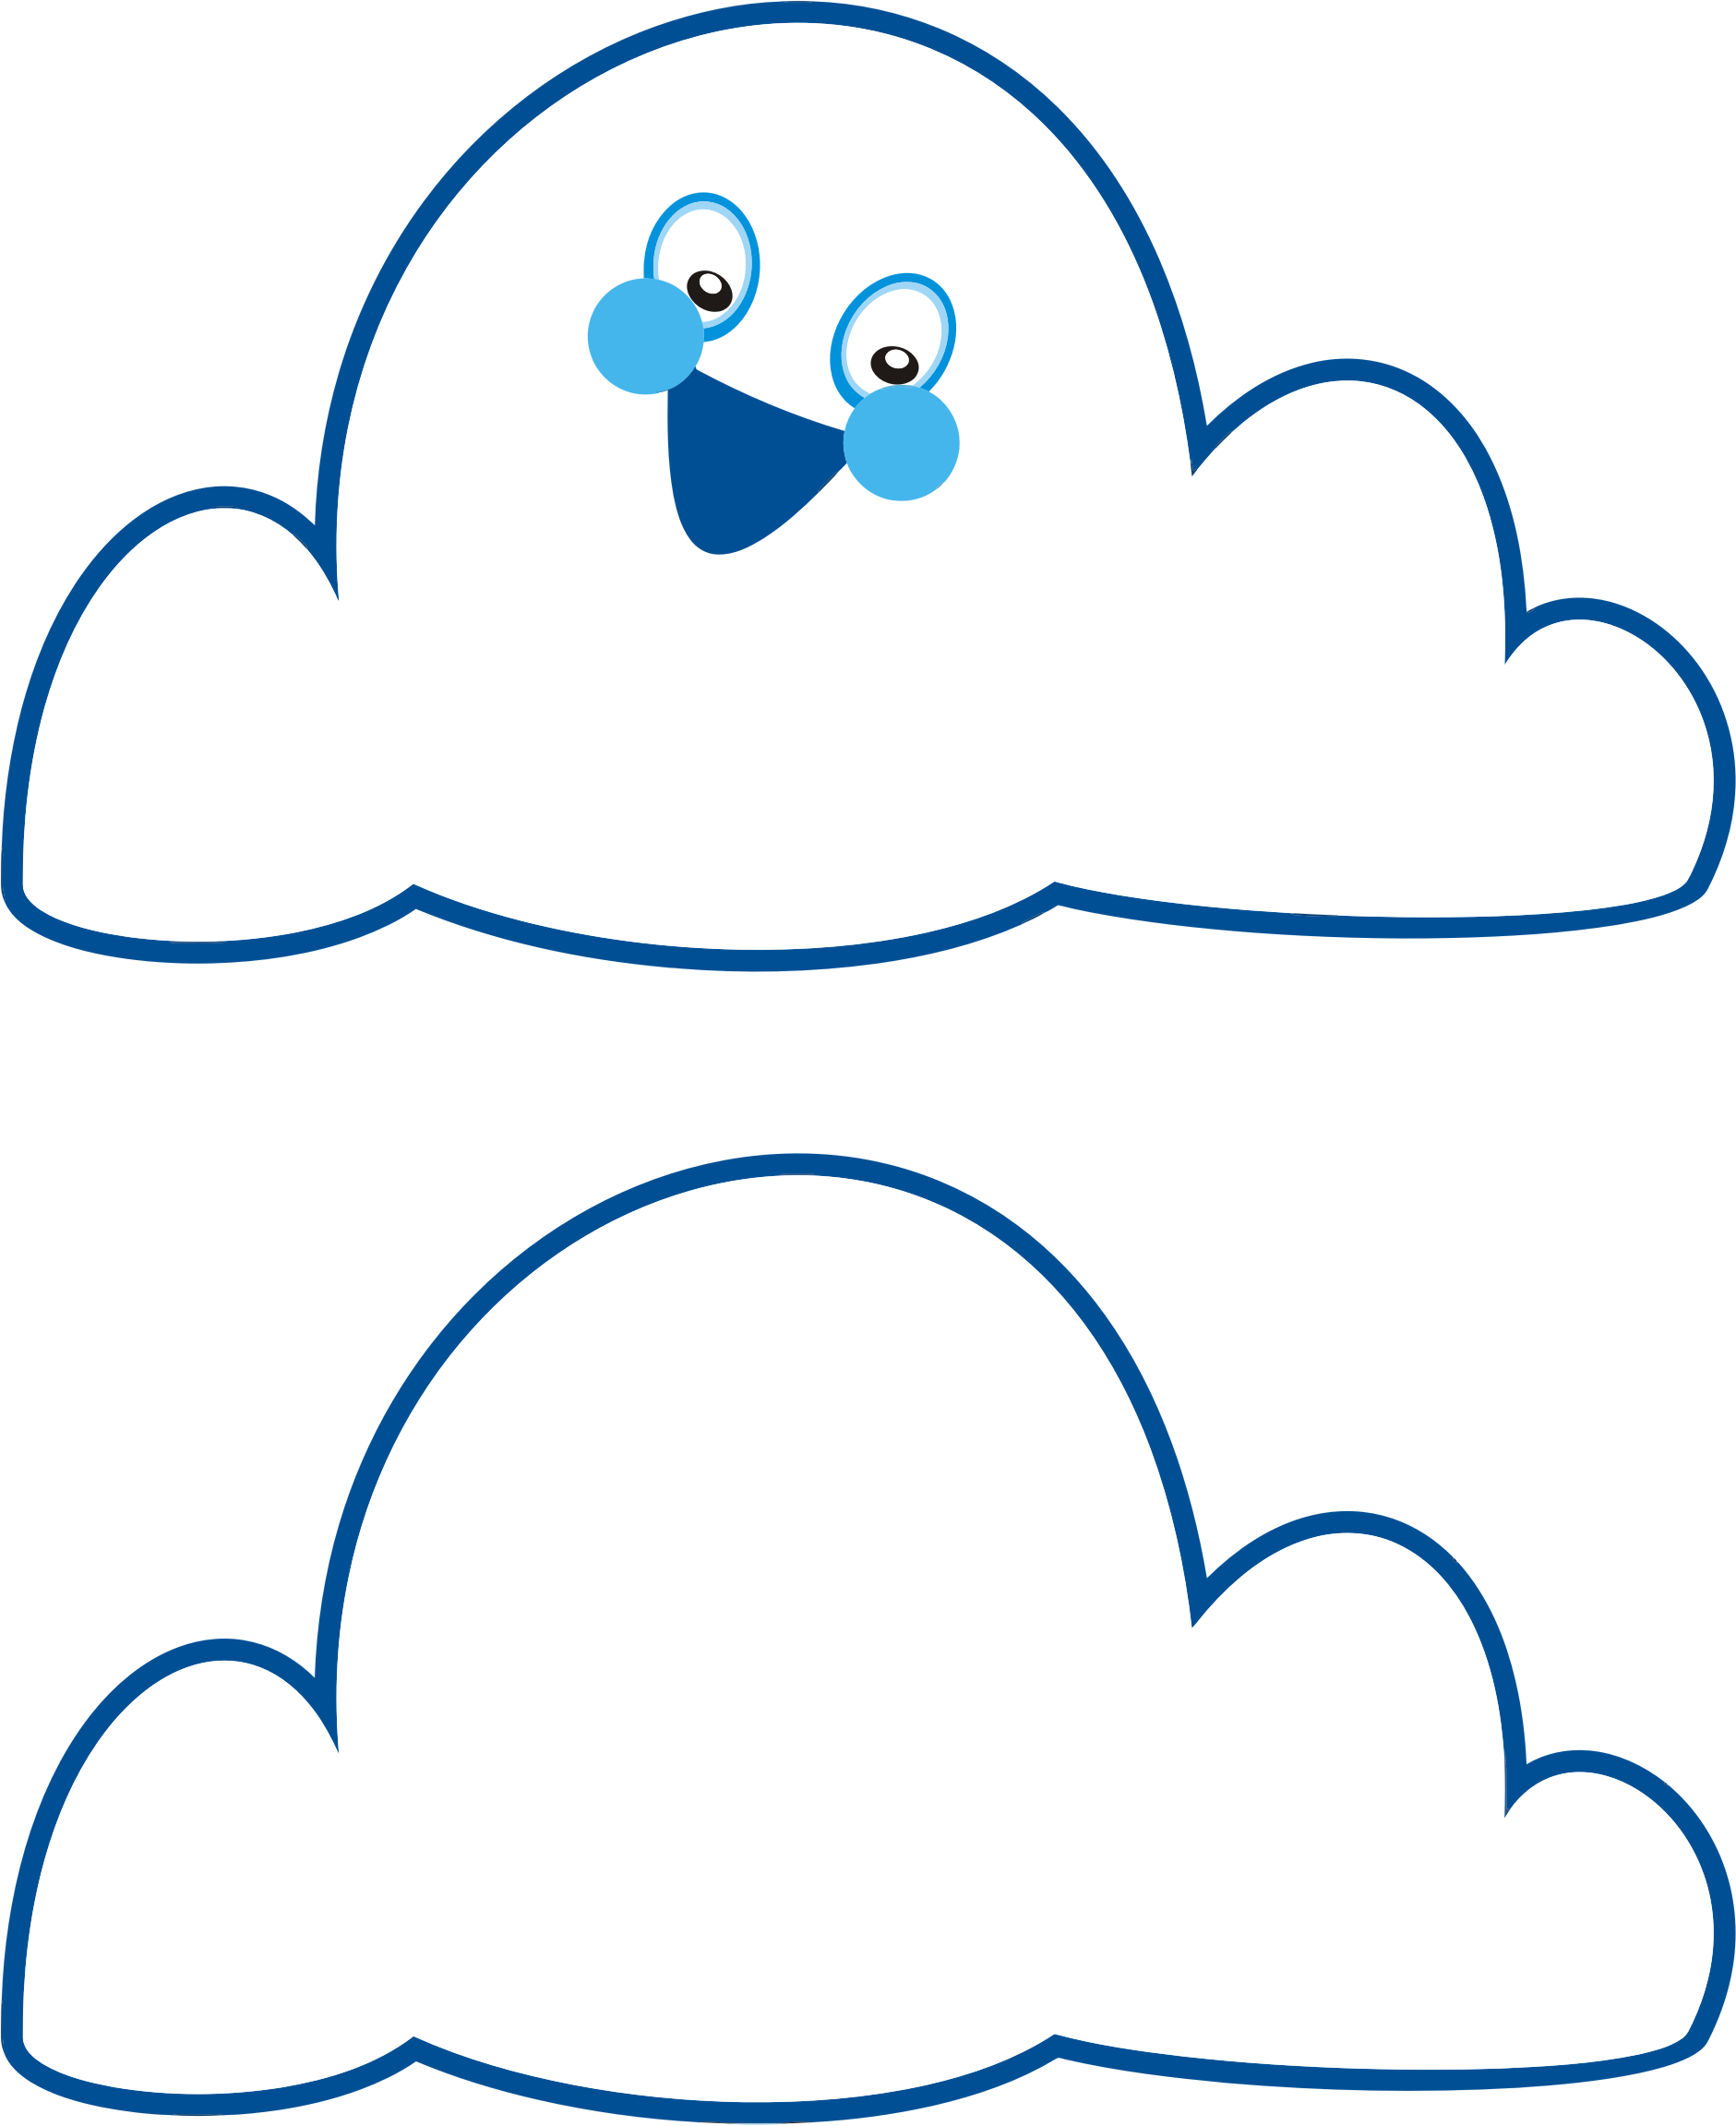 Anthropomorphic Cloud by GDJ